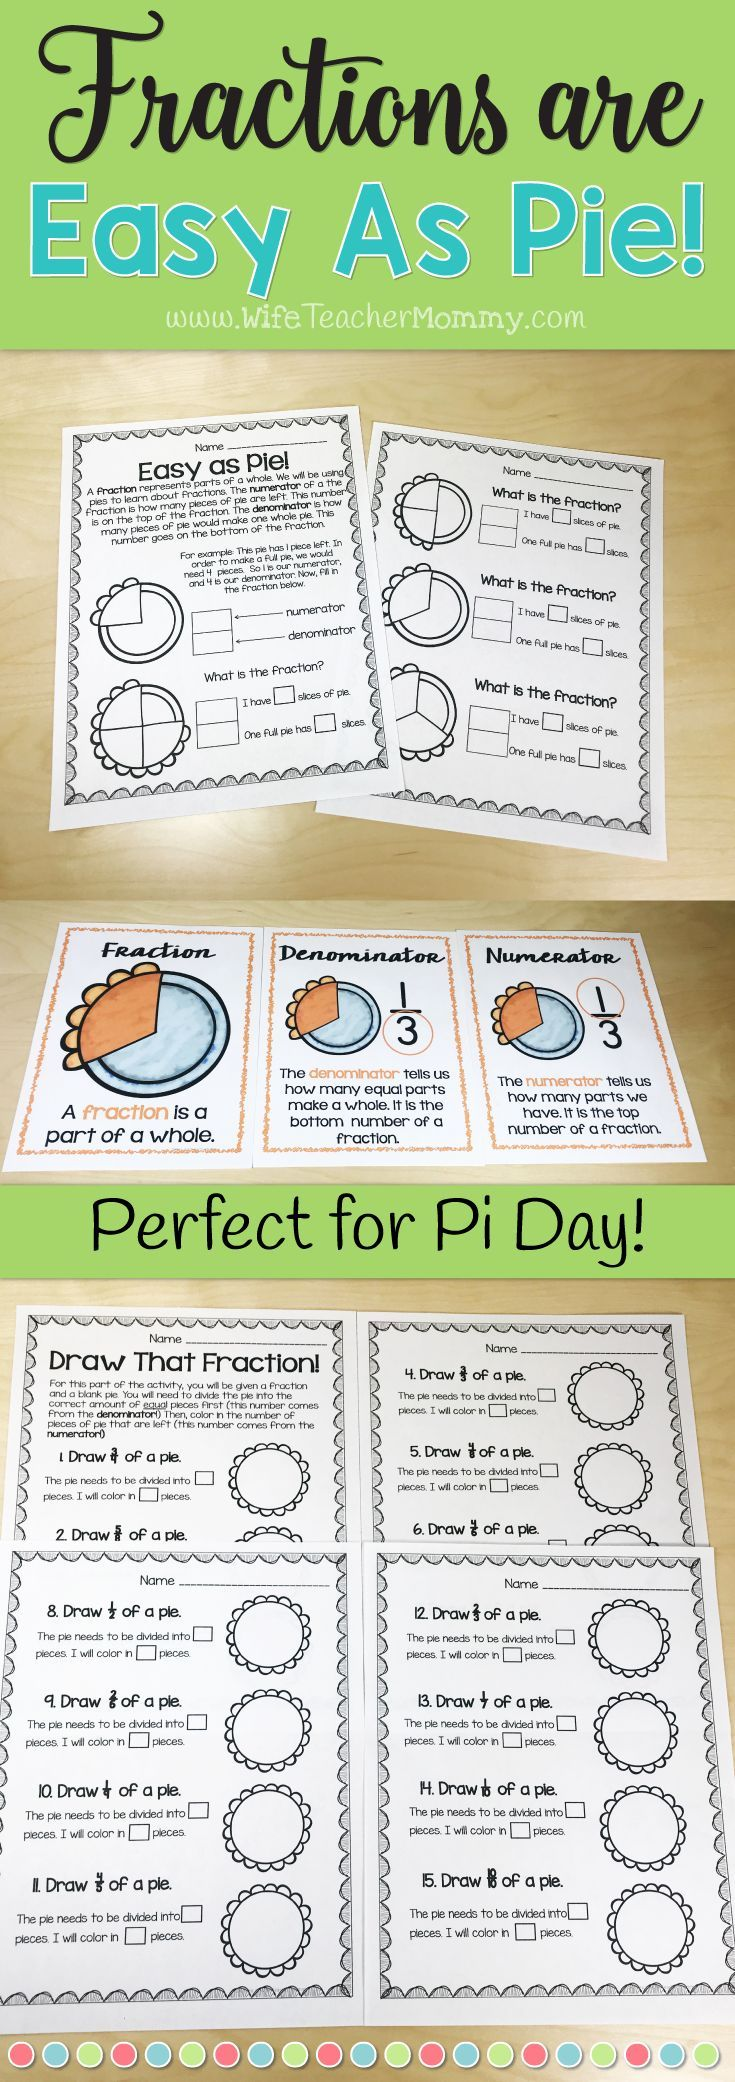 Pi Day Teaching Idea Great For March Worksheets Fractions Worksheets For 3rd Grade And 4th Grade Th Fractions Worksheets Fractions 4th Grade Math Worksheets [ 2082 x 735 Pixel ]